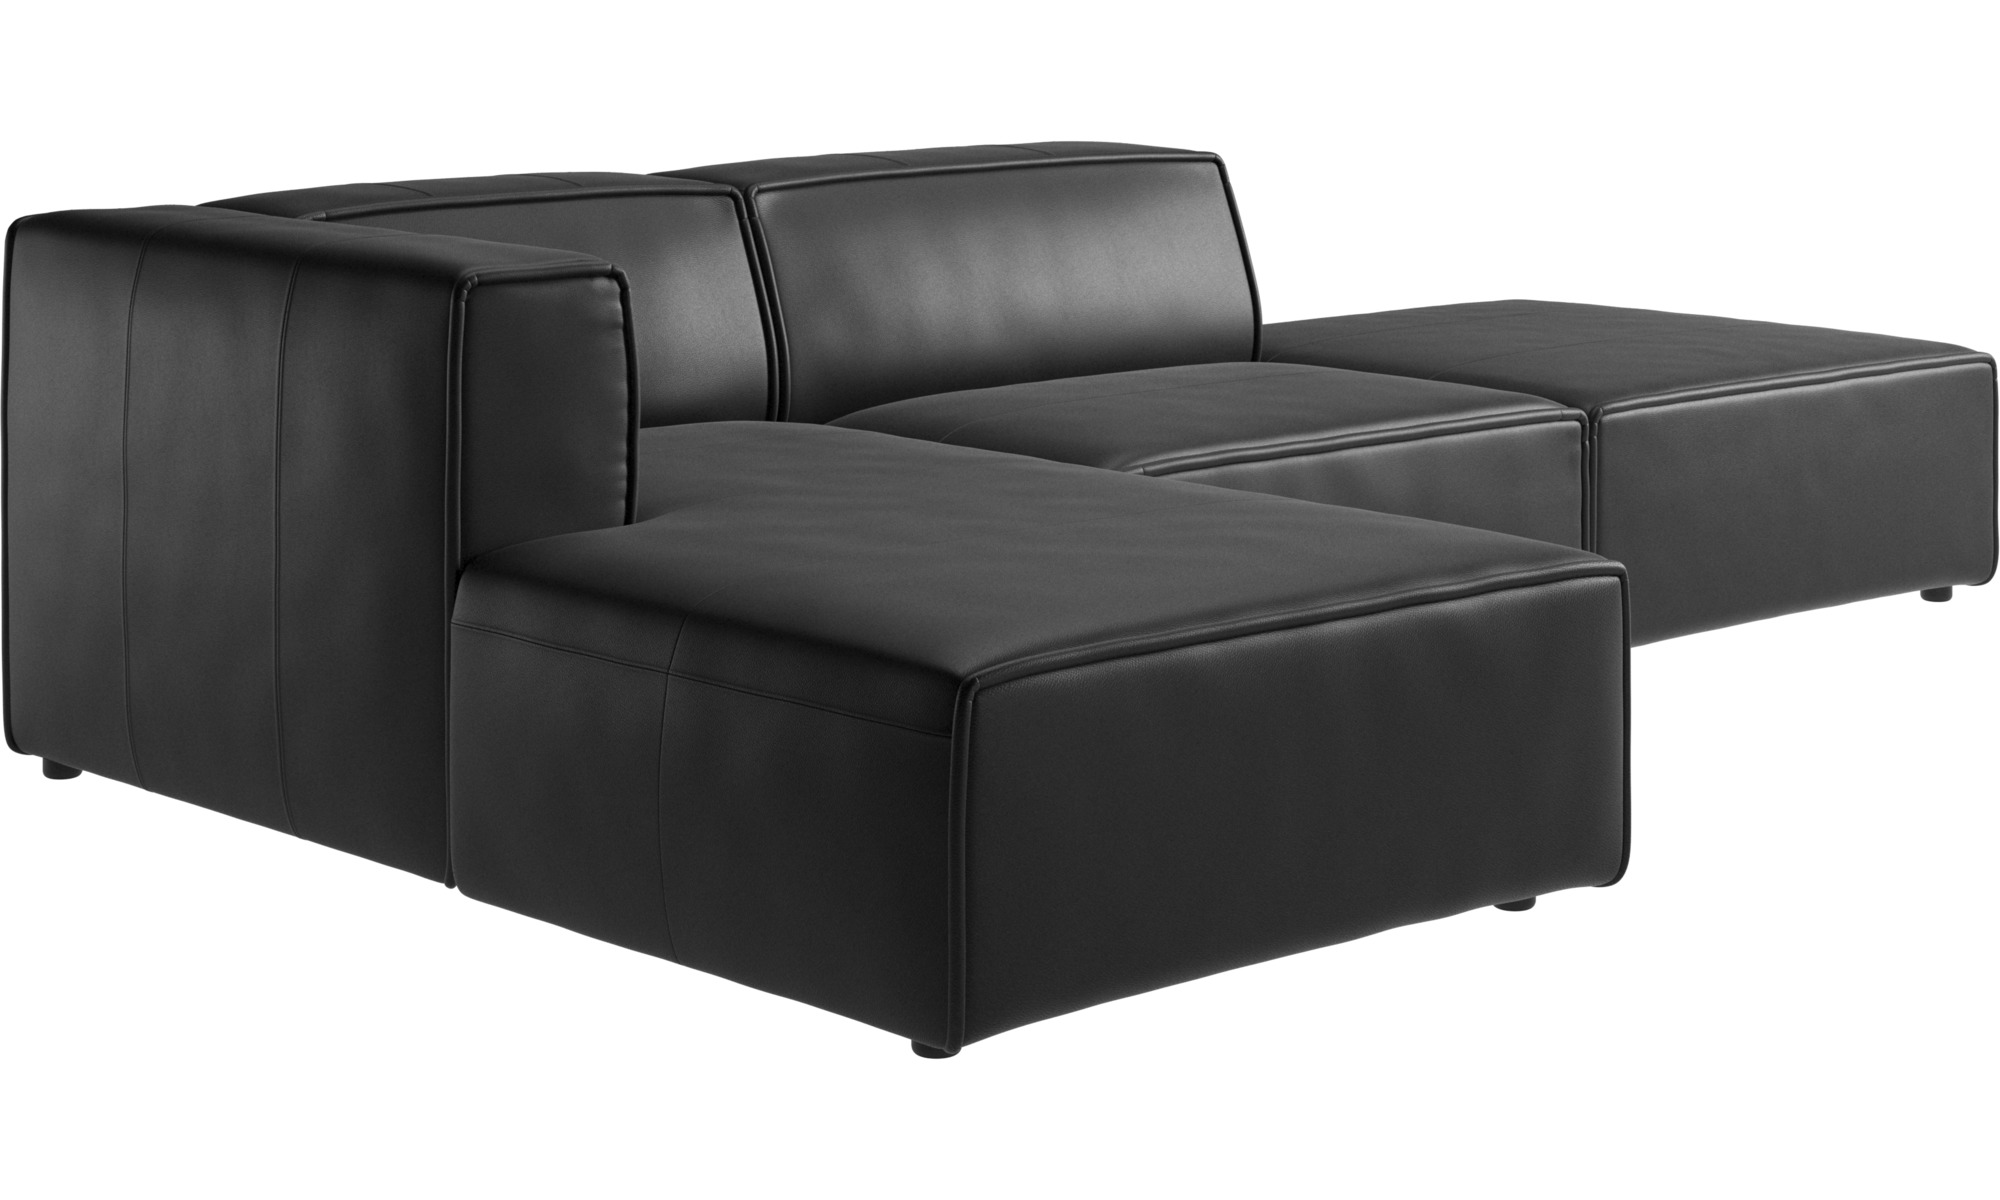 chaise longue sofas carmo sofa with lounging and resting unit boconcept. Black Bedroom Furniture Sets. Home Design Ideas